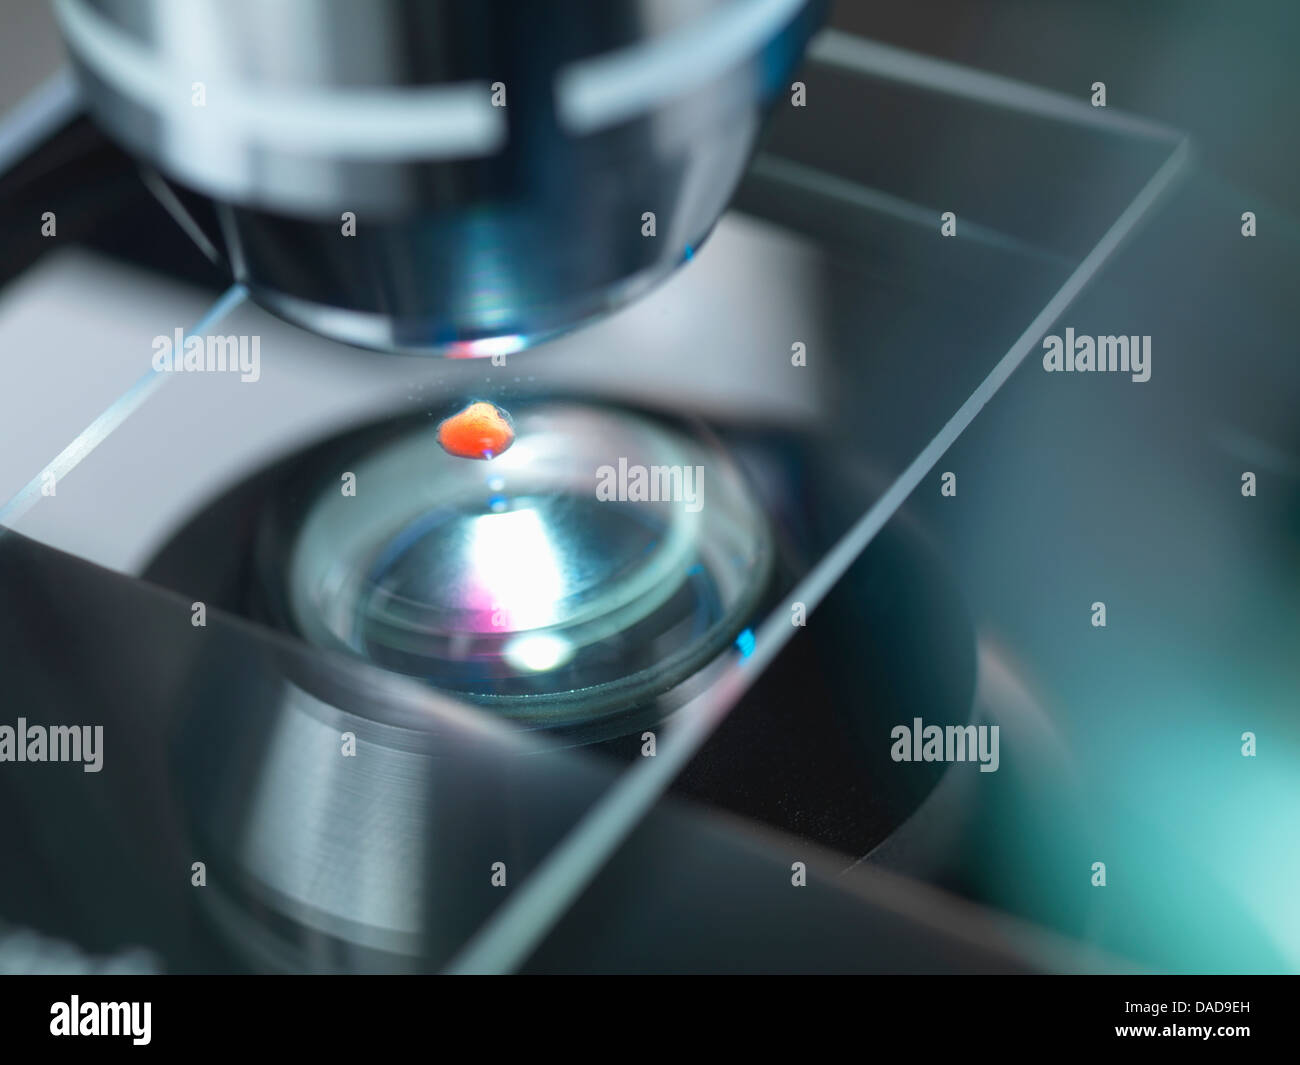 A light microscope examining a sample in lab for pharmaceutical research - Stock Image